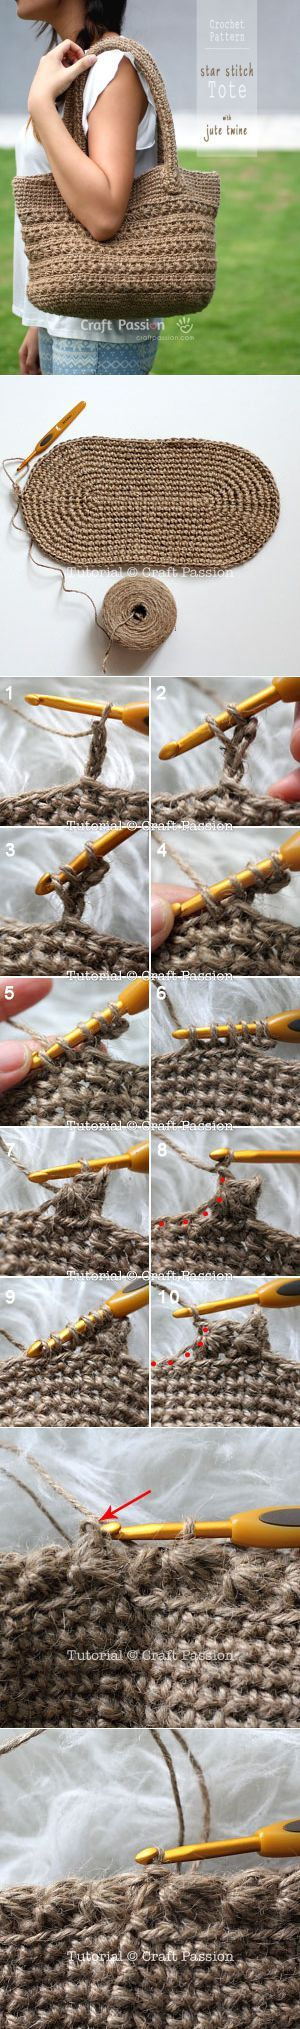 Crochet | Star Stitch Tote With Jute Twine | Free Pattern & Tutorial at CraftPassion.com - Part 2 ☂ᙓᖇᗴᔕᗩ ᖇᙓᔕ☂ᙓᘐᘎᓮ http://www.pinterest.com/teretegui